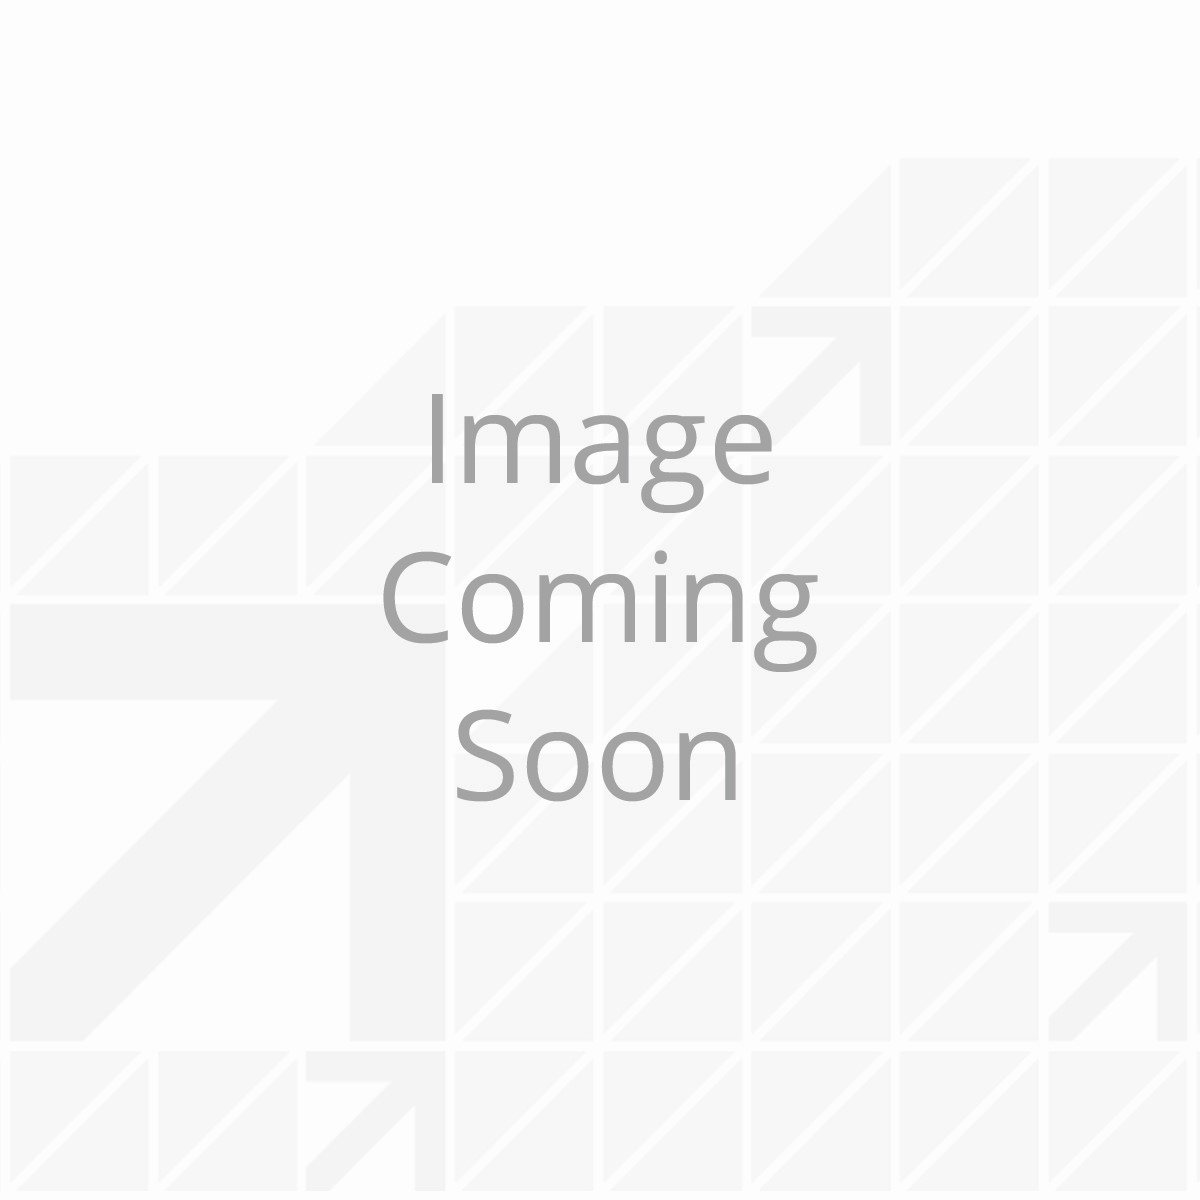 Gear Motor without pin for Above Floor Slide-outs